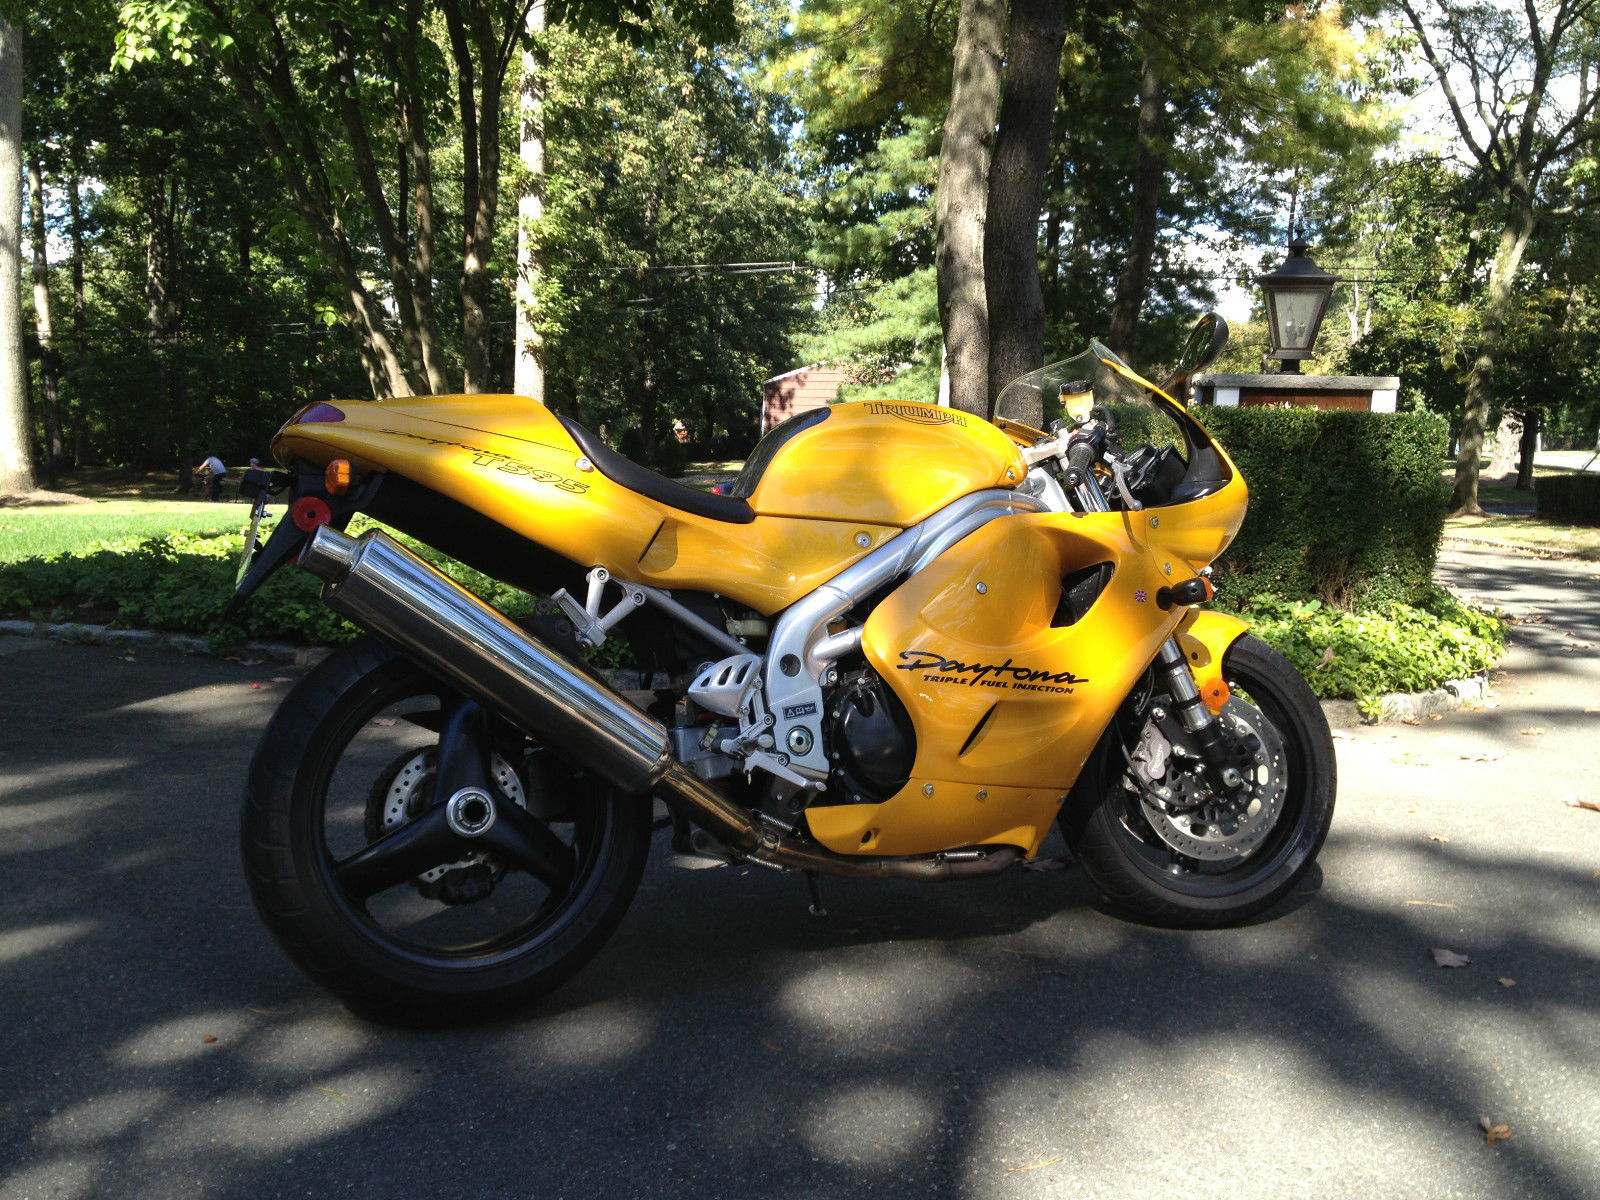 t595 archives - rare sportbikes for sale